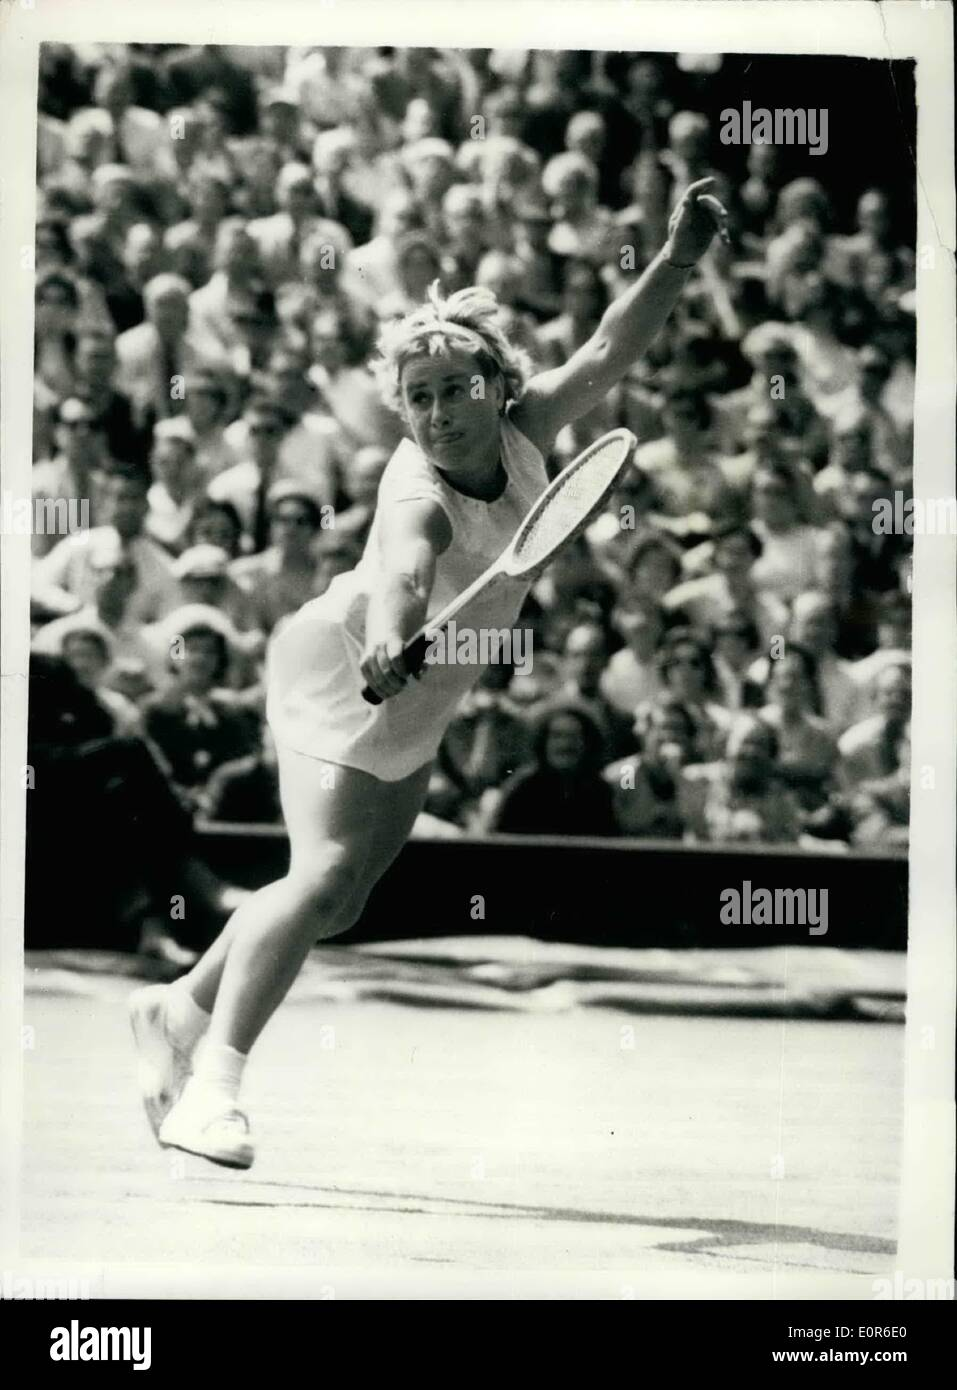 Jun. 06, 1958 - Wight man cup at Wimbledon.Shirley Bloomer in play. Photo shows Miss.Shirley Bloomer in play during her match with American's Mrs.Dorthy k node in the Wight man cup at Wimbledon this afternoon. - Stock Image